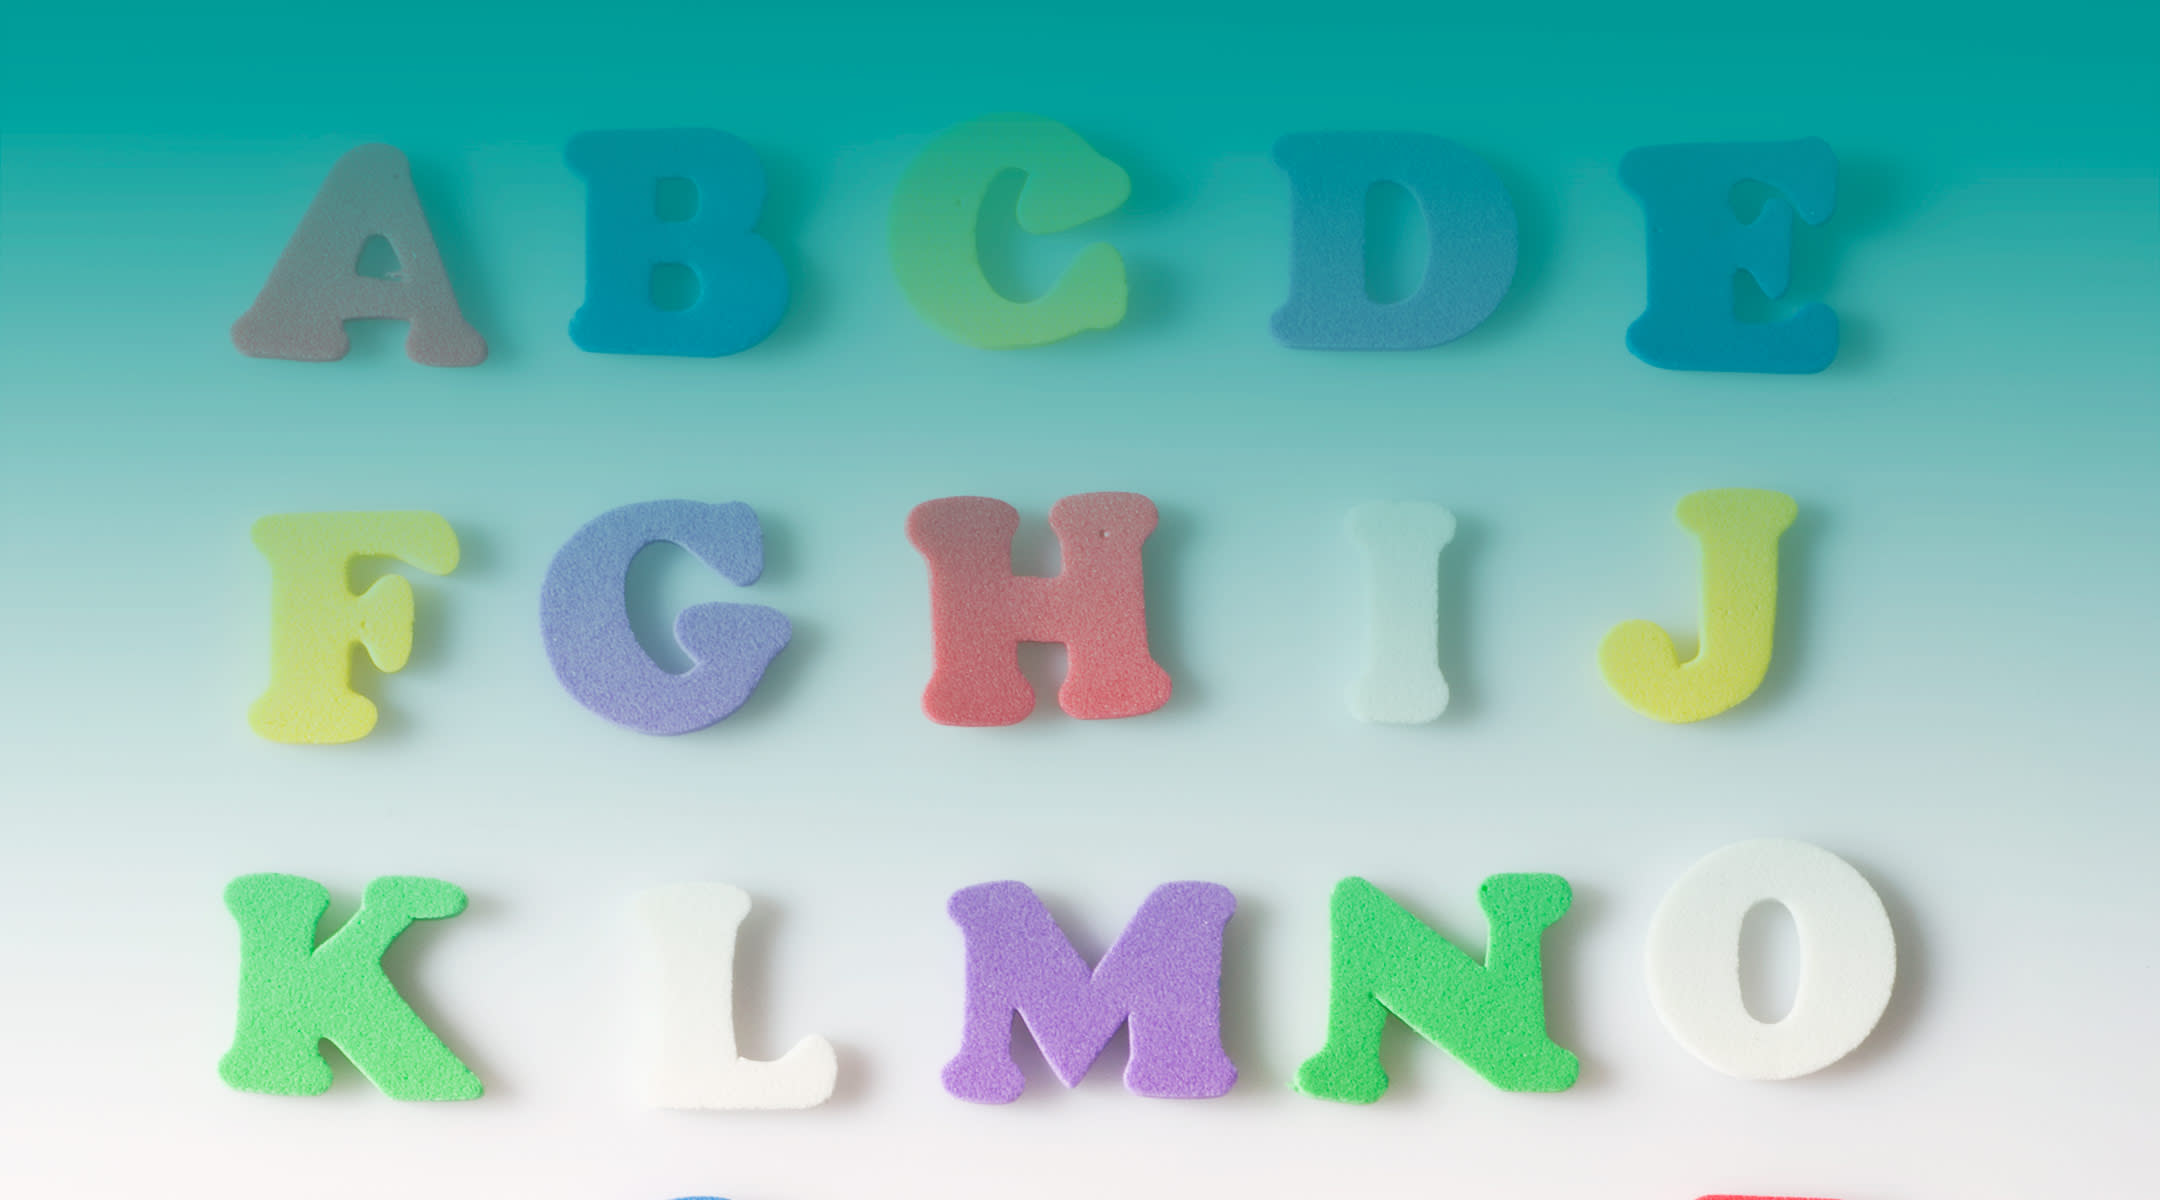 letters of the alphabet with teal gradient